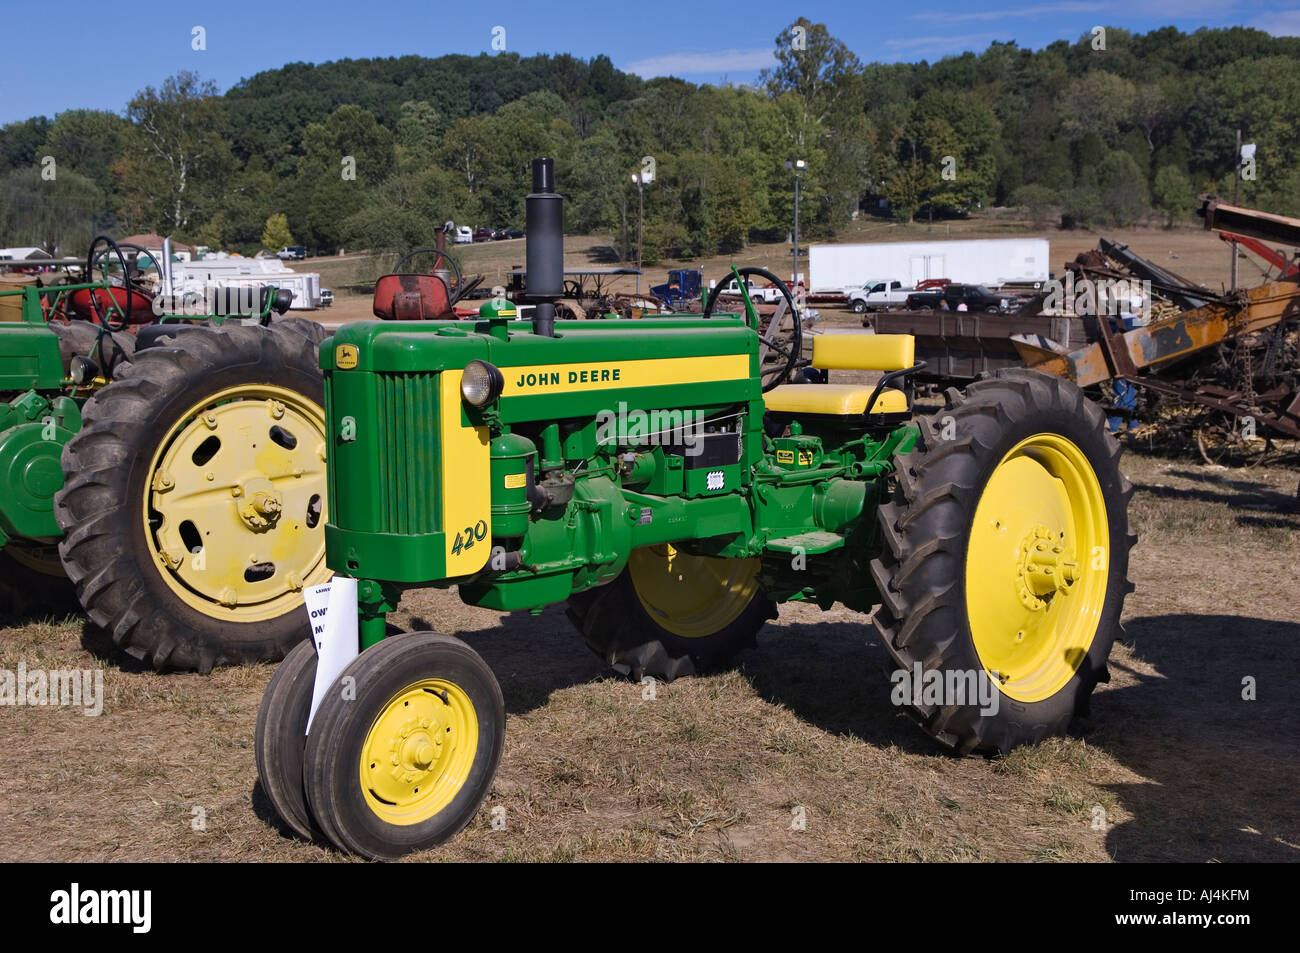 Collectors Vintage John Deere Tractors : Antique john deere t tractor on display at